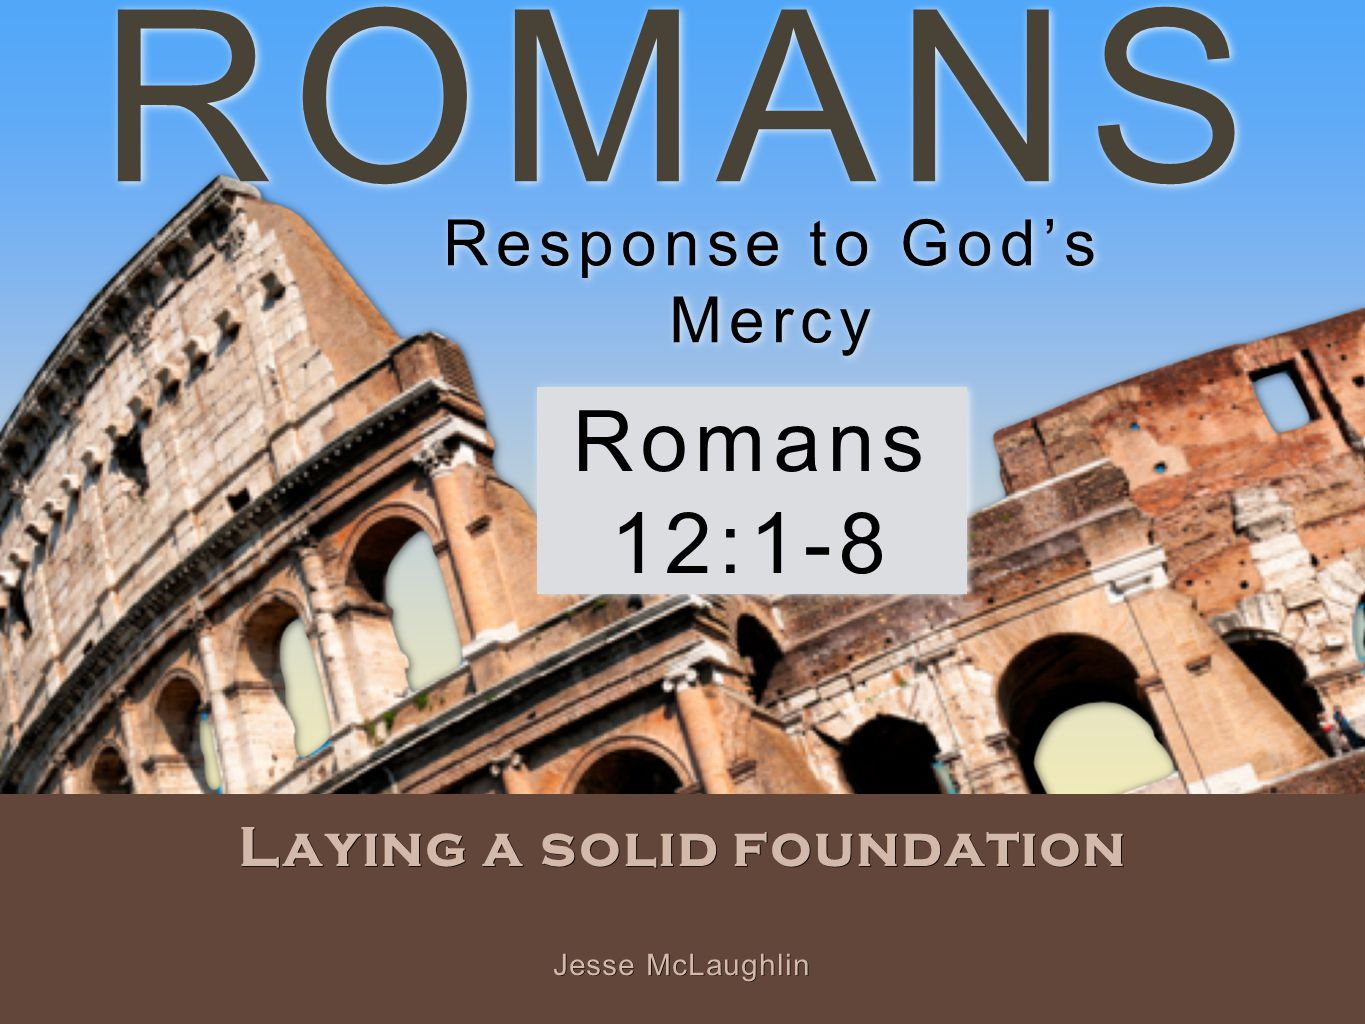 ROMANS Laying a solid foundation Romans 12:1-8 Jesse McLaughlin Response to God's Mercy